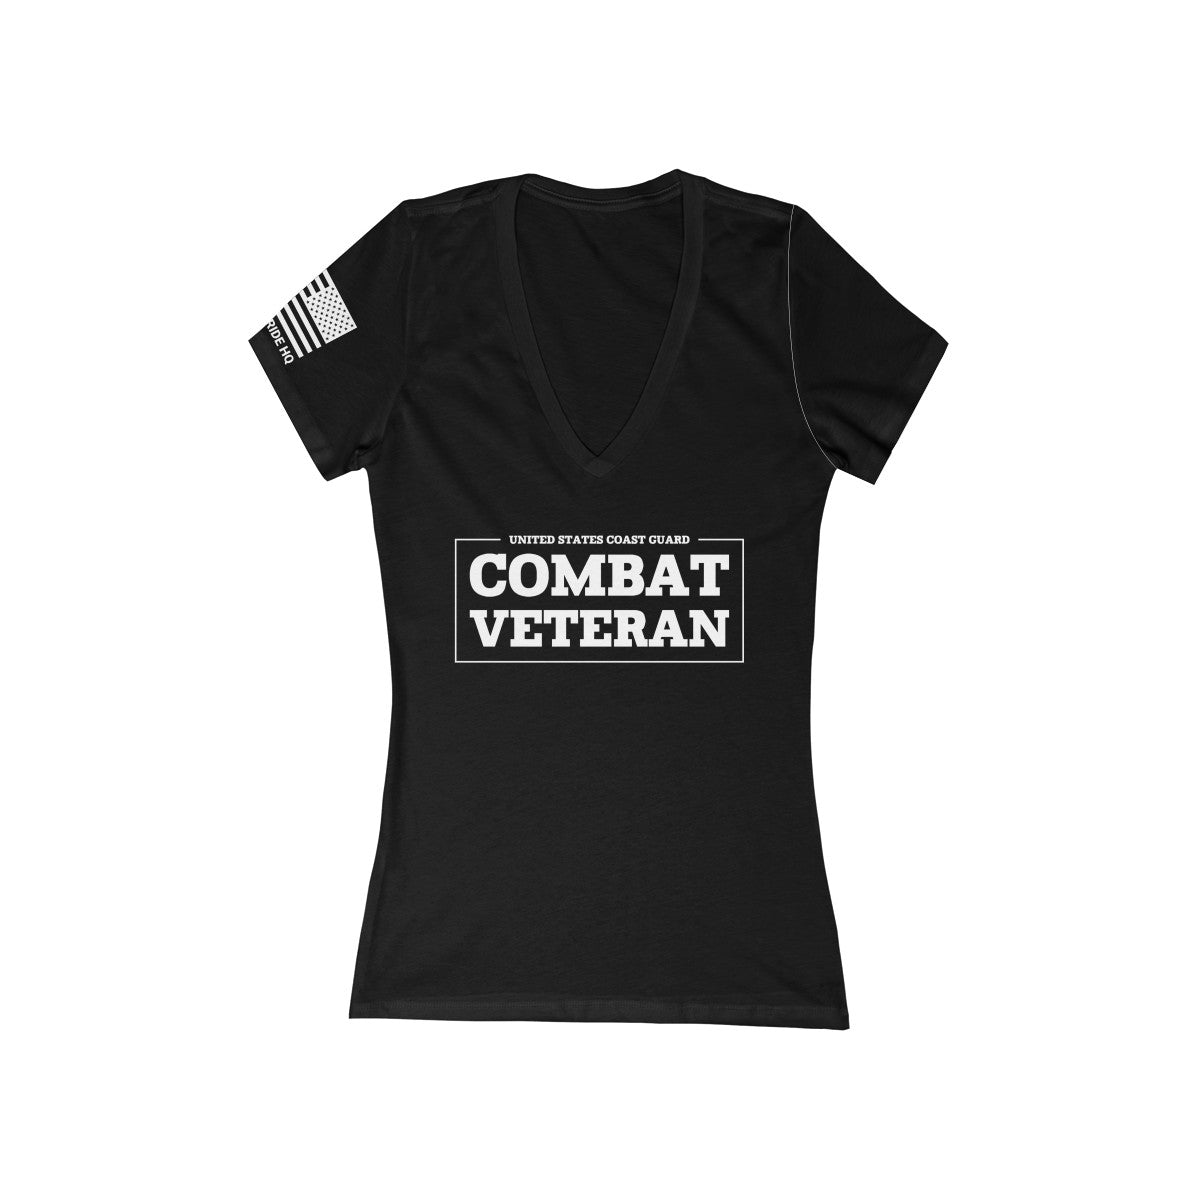 United States Coast Guard Combat Veteran Women's V-Neck Tee